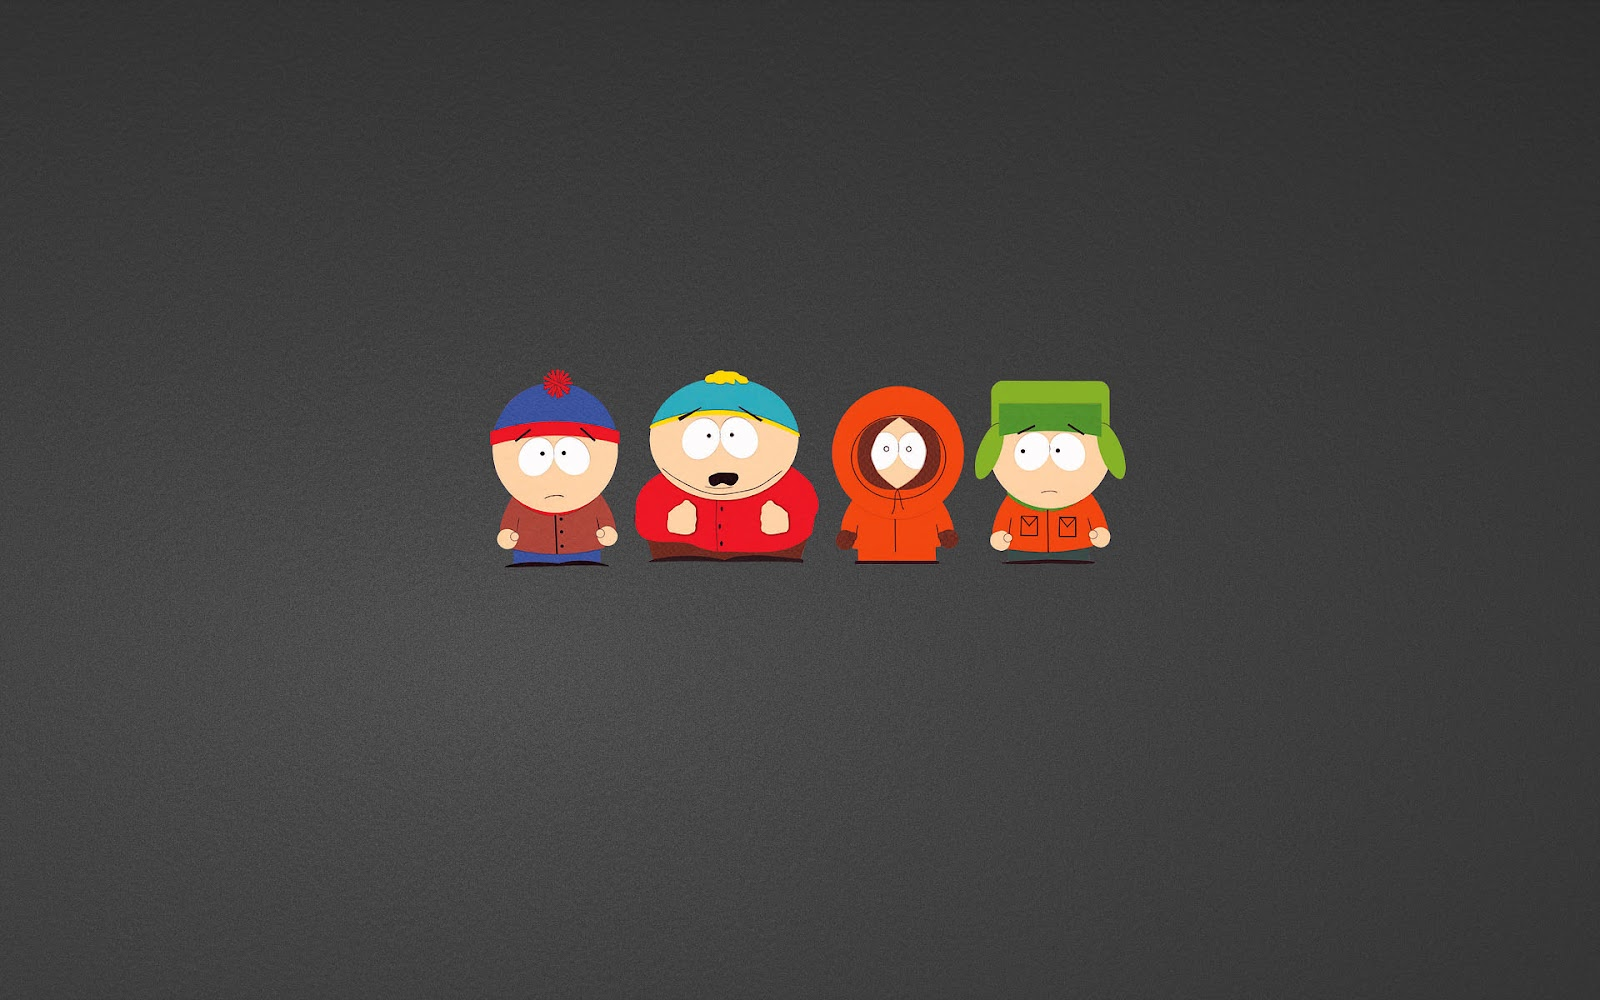 south park phone wallpaper - photo #18